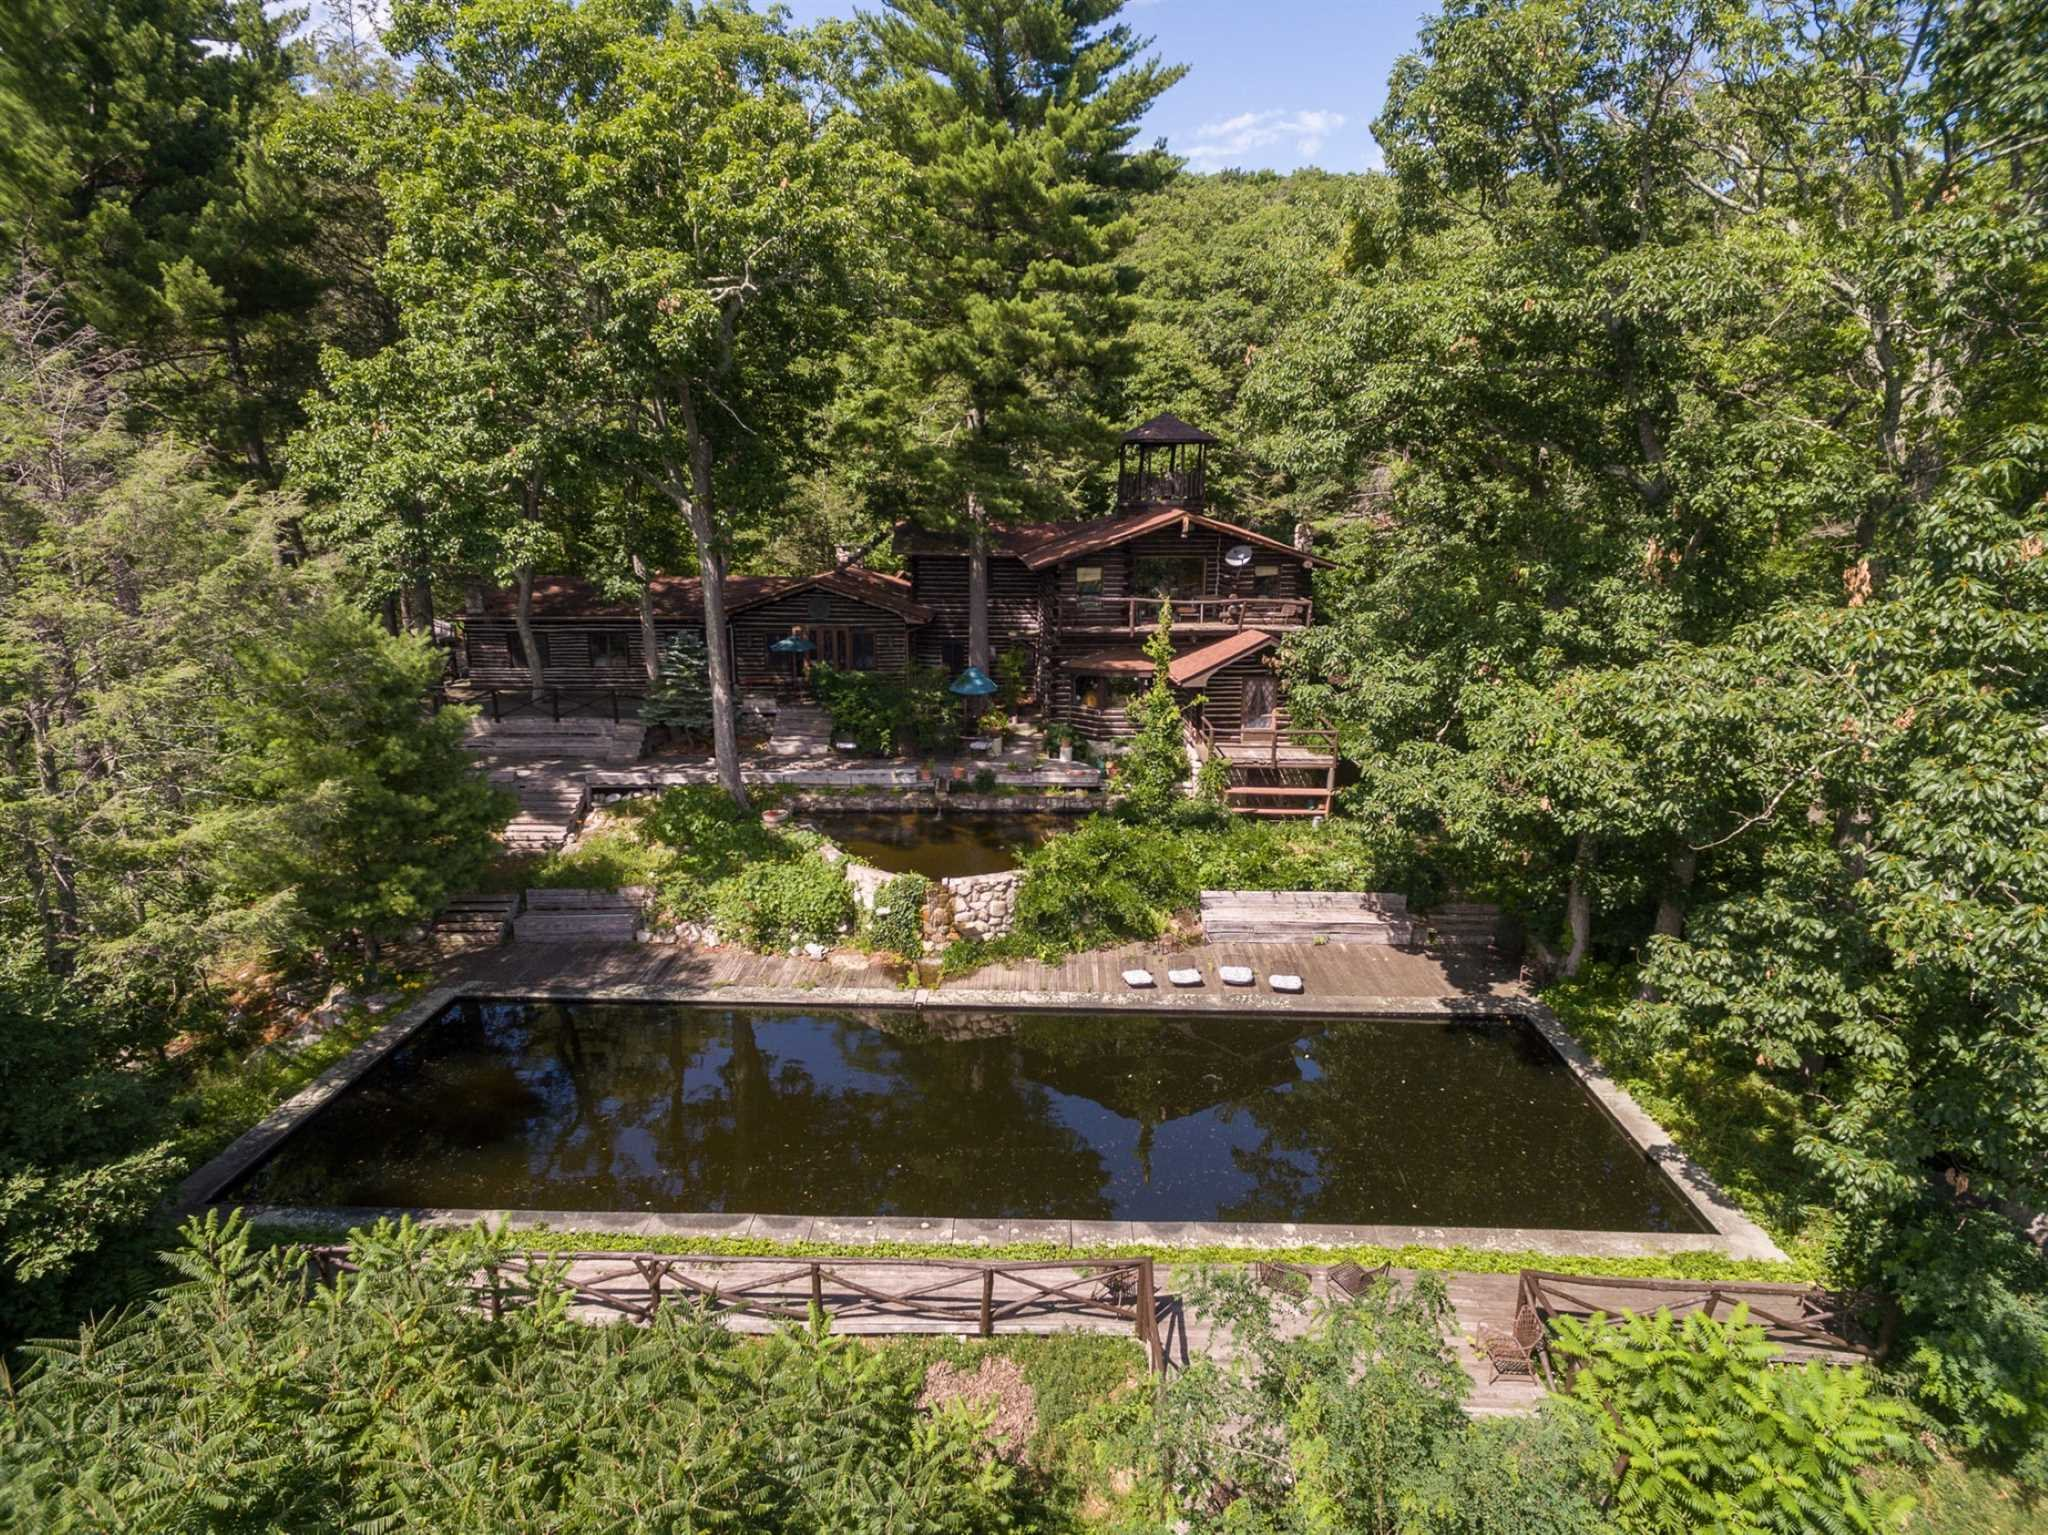 Single Family Home for Sale at CAMP RIDGE Road CAMP RIDGE Road Gardiner, New York 12589 United States